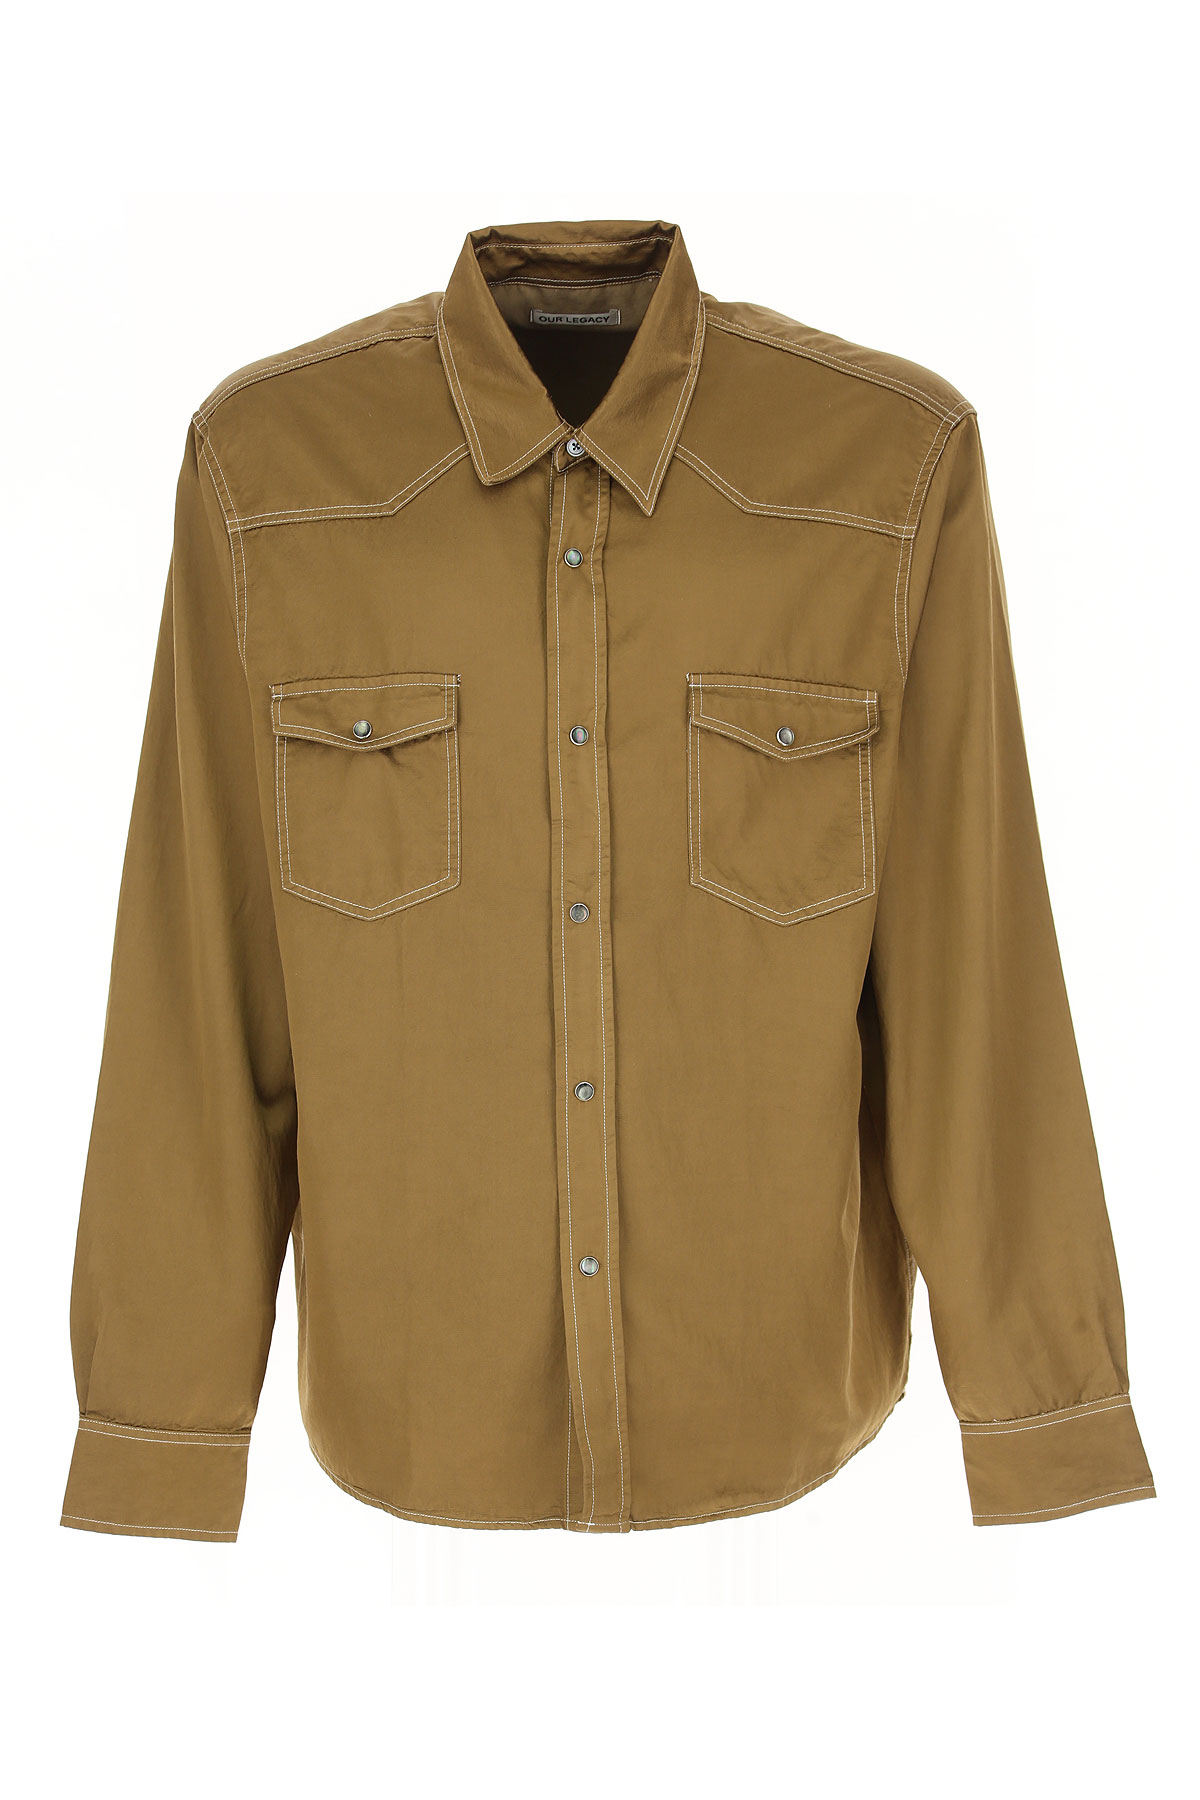 Image of Our Legacy Shirt for Men, Olive, Cotton, 2017, 34 36